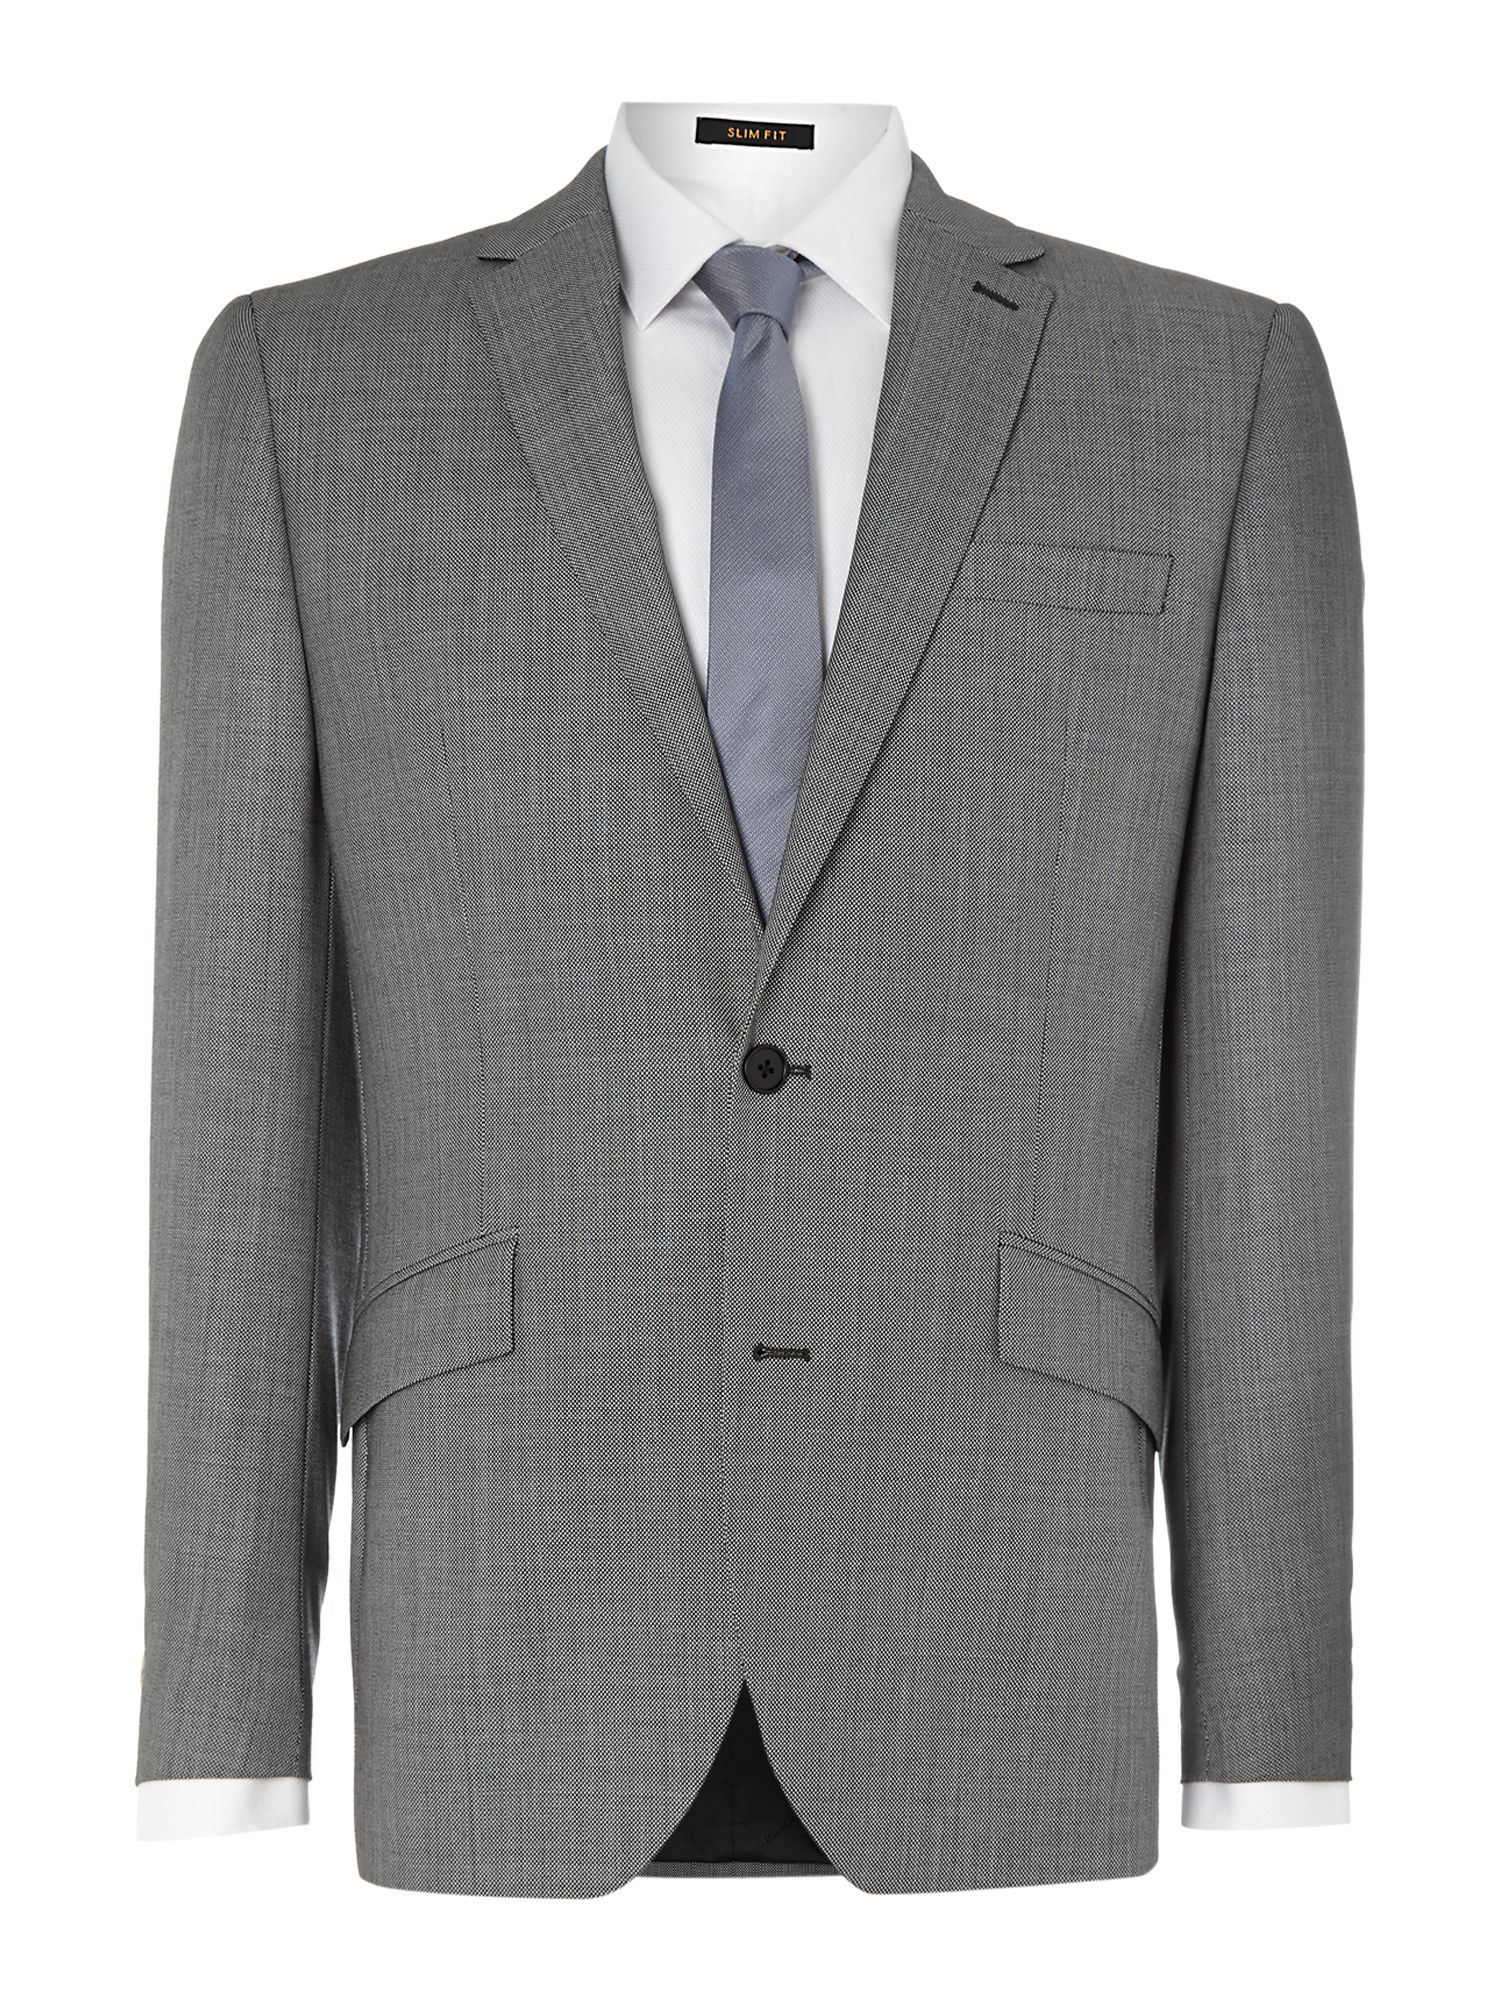 Goodnow Birdseye Notch Lapel Suit Jacket